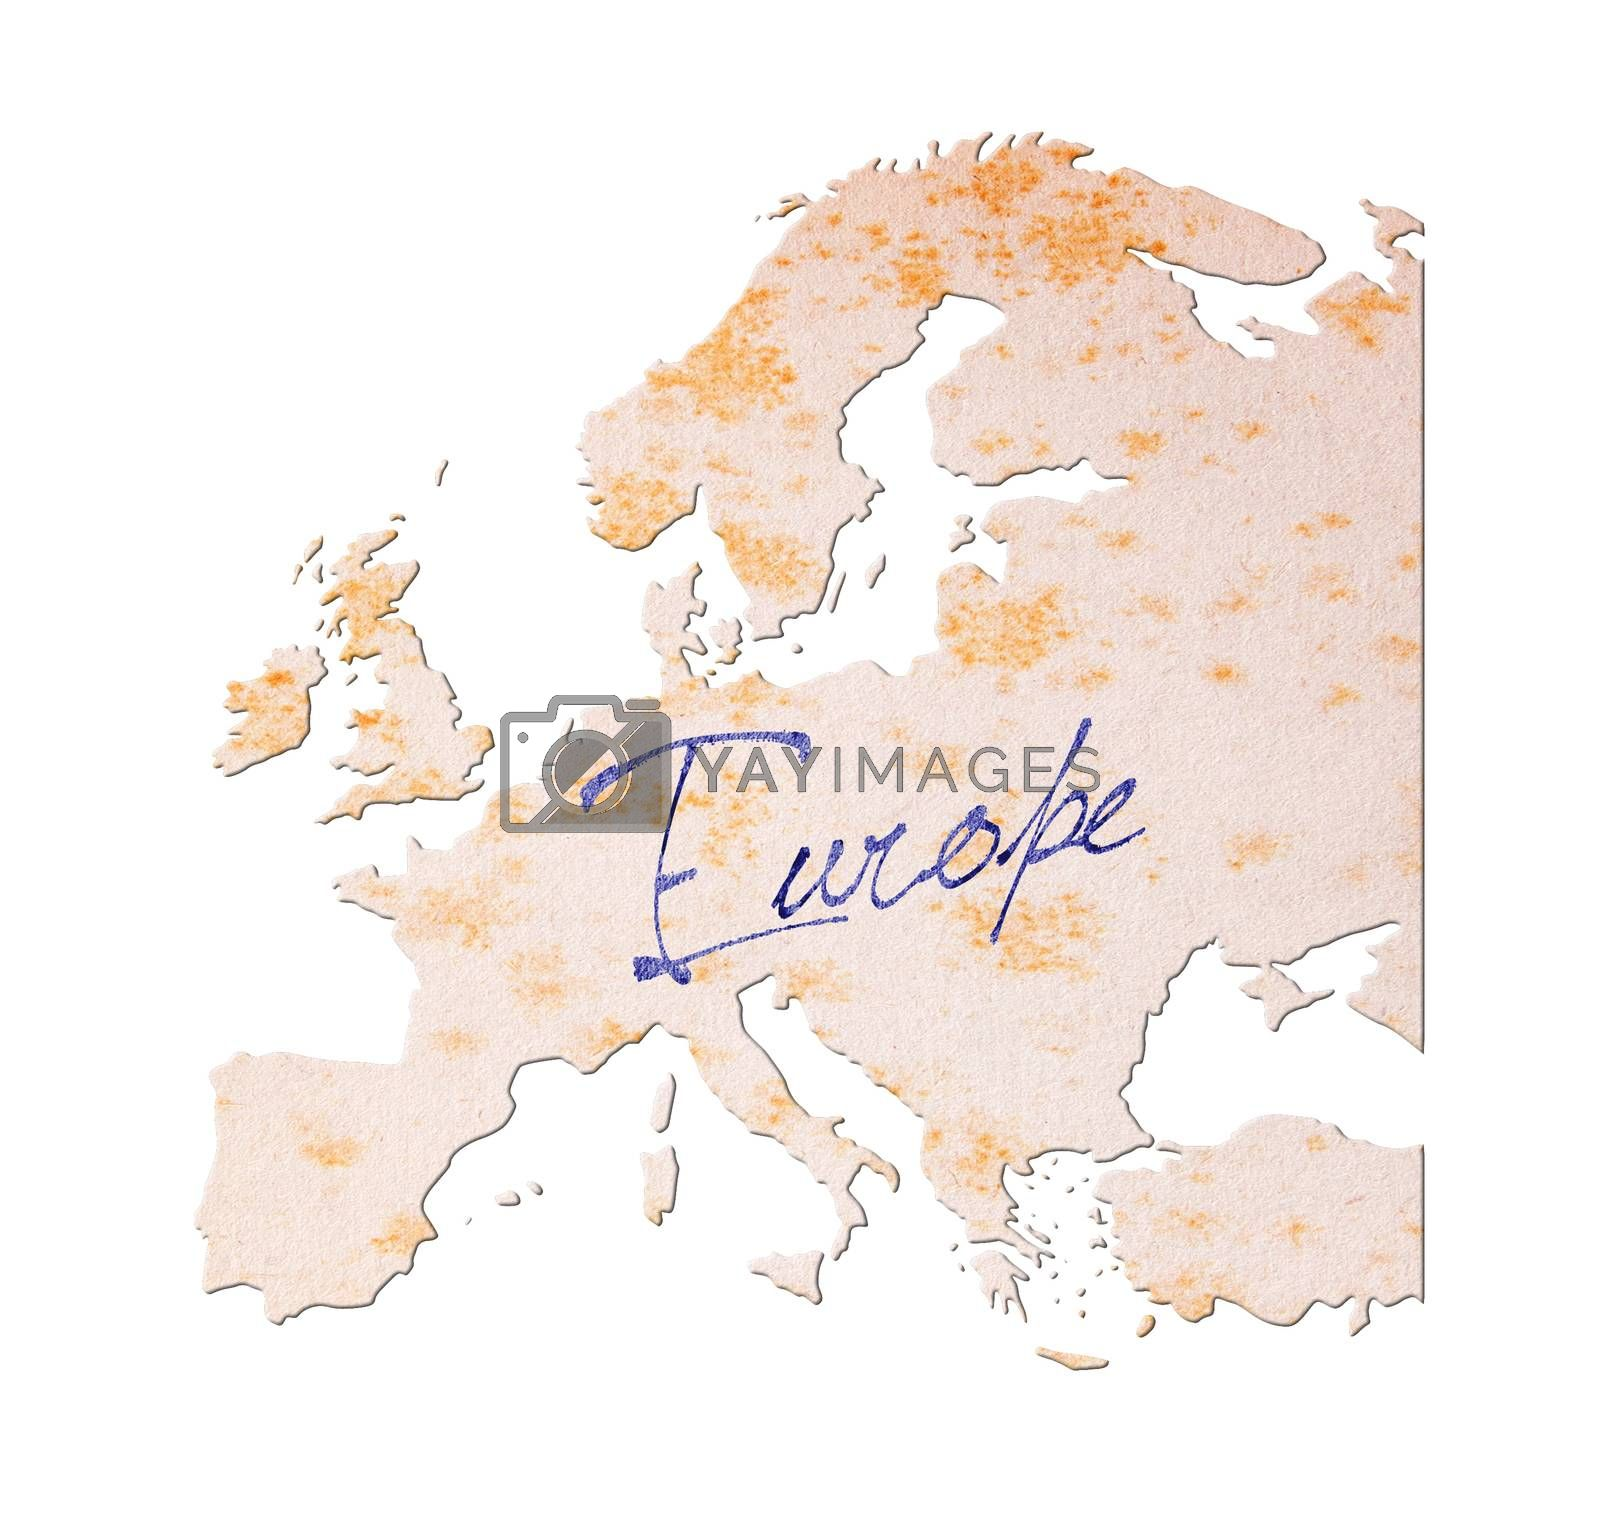 Royalty free image of Europe - Old paper with handwriting by michaklootwijk